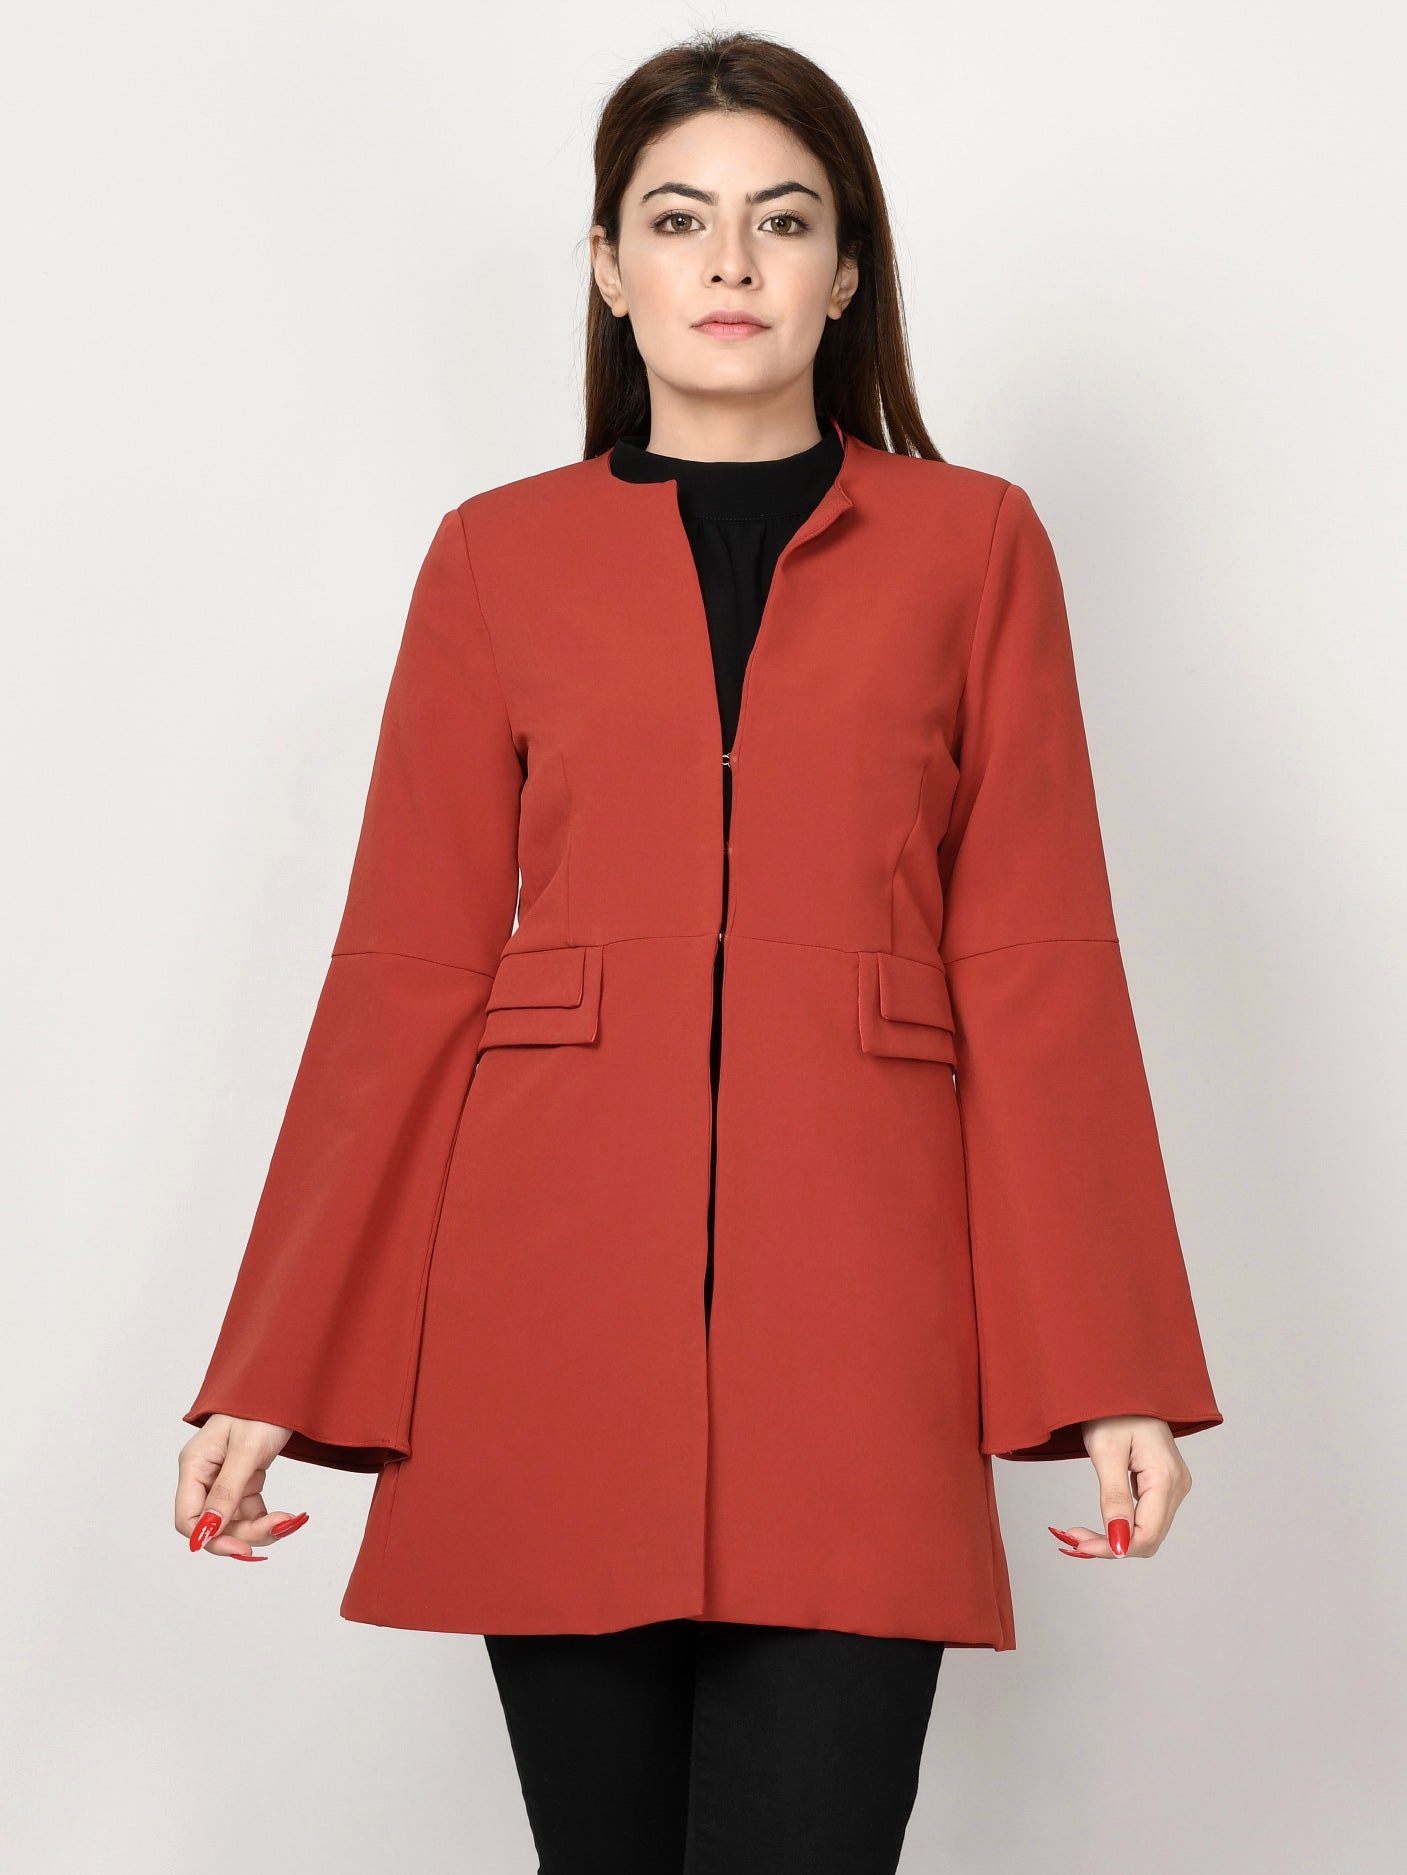 Bell Sleeved Coat - Rust